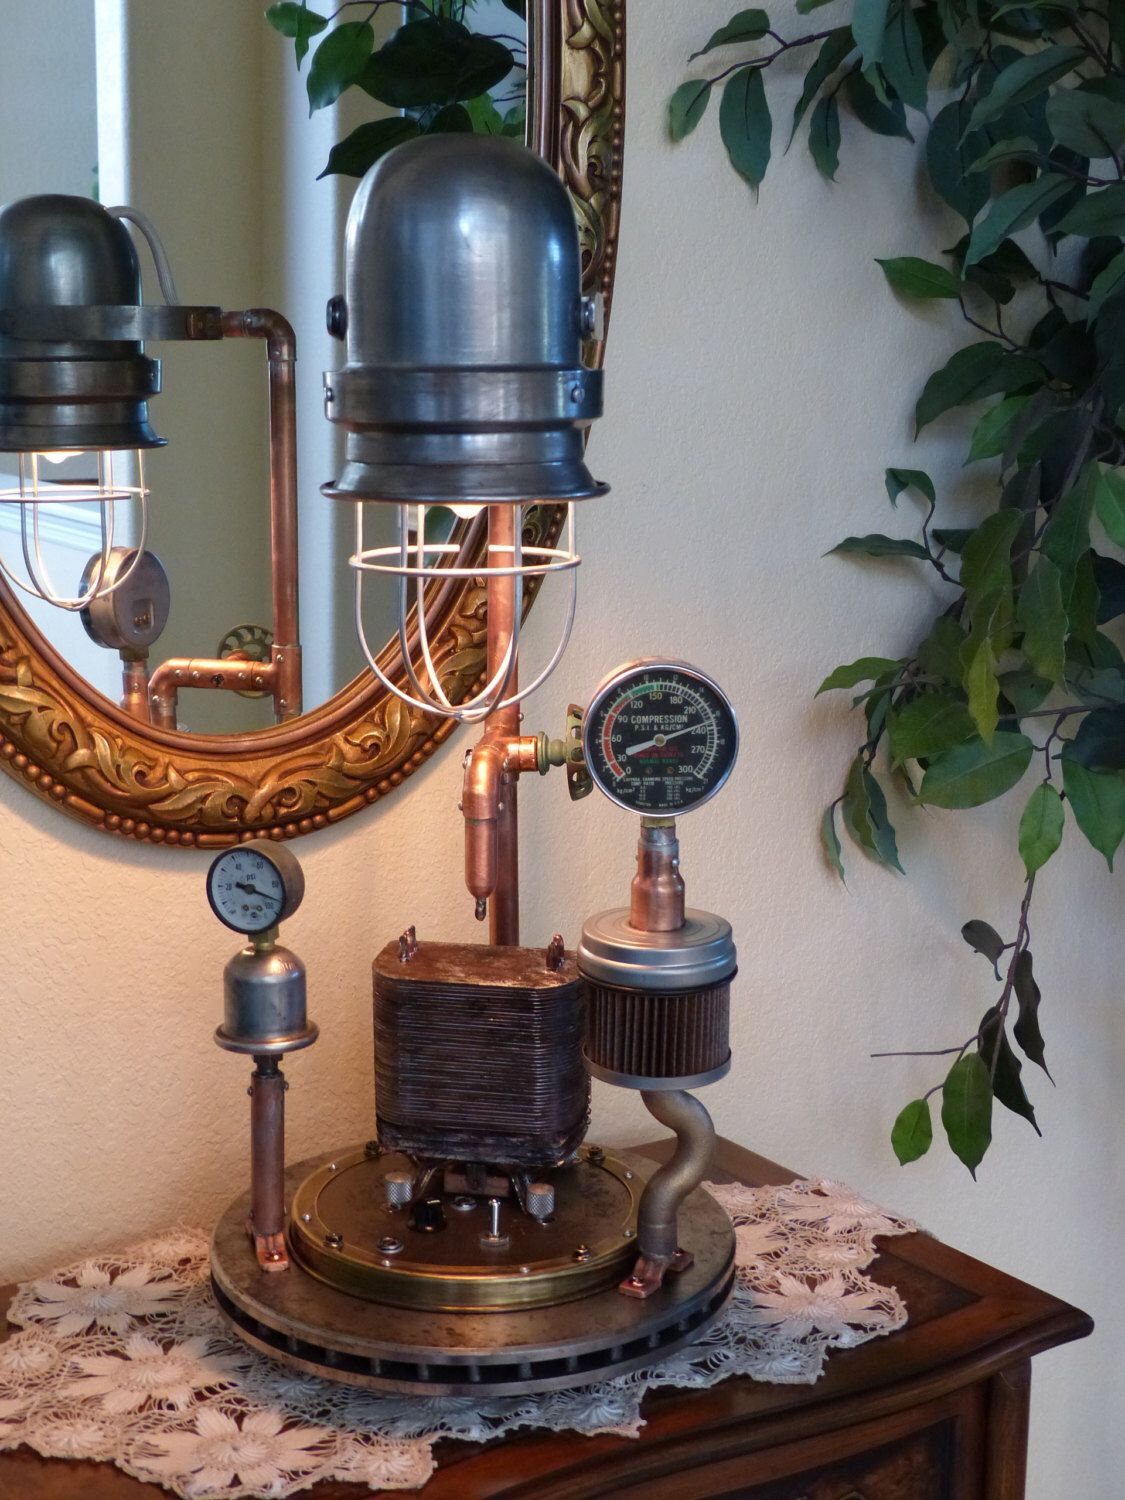 Steampunk, Lamp Art, Gauges, Copper, Brass, Lamp, Edison, Lighting, Gears, Art, MasterGreig - MG-324 by MasterGreig on Etsy https://www.etsy.com/listing/200585909/steampunk-lamp-art-gauges-copper-brass